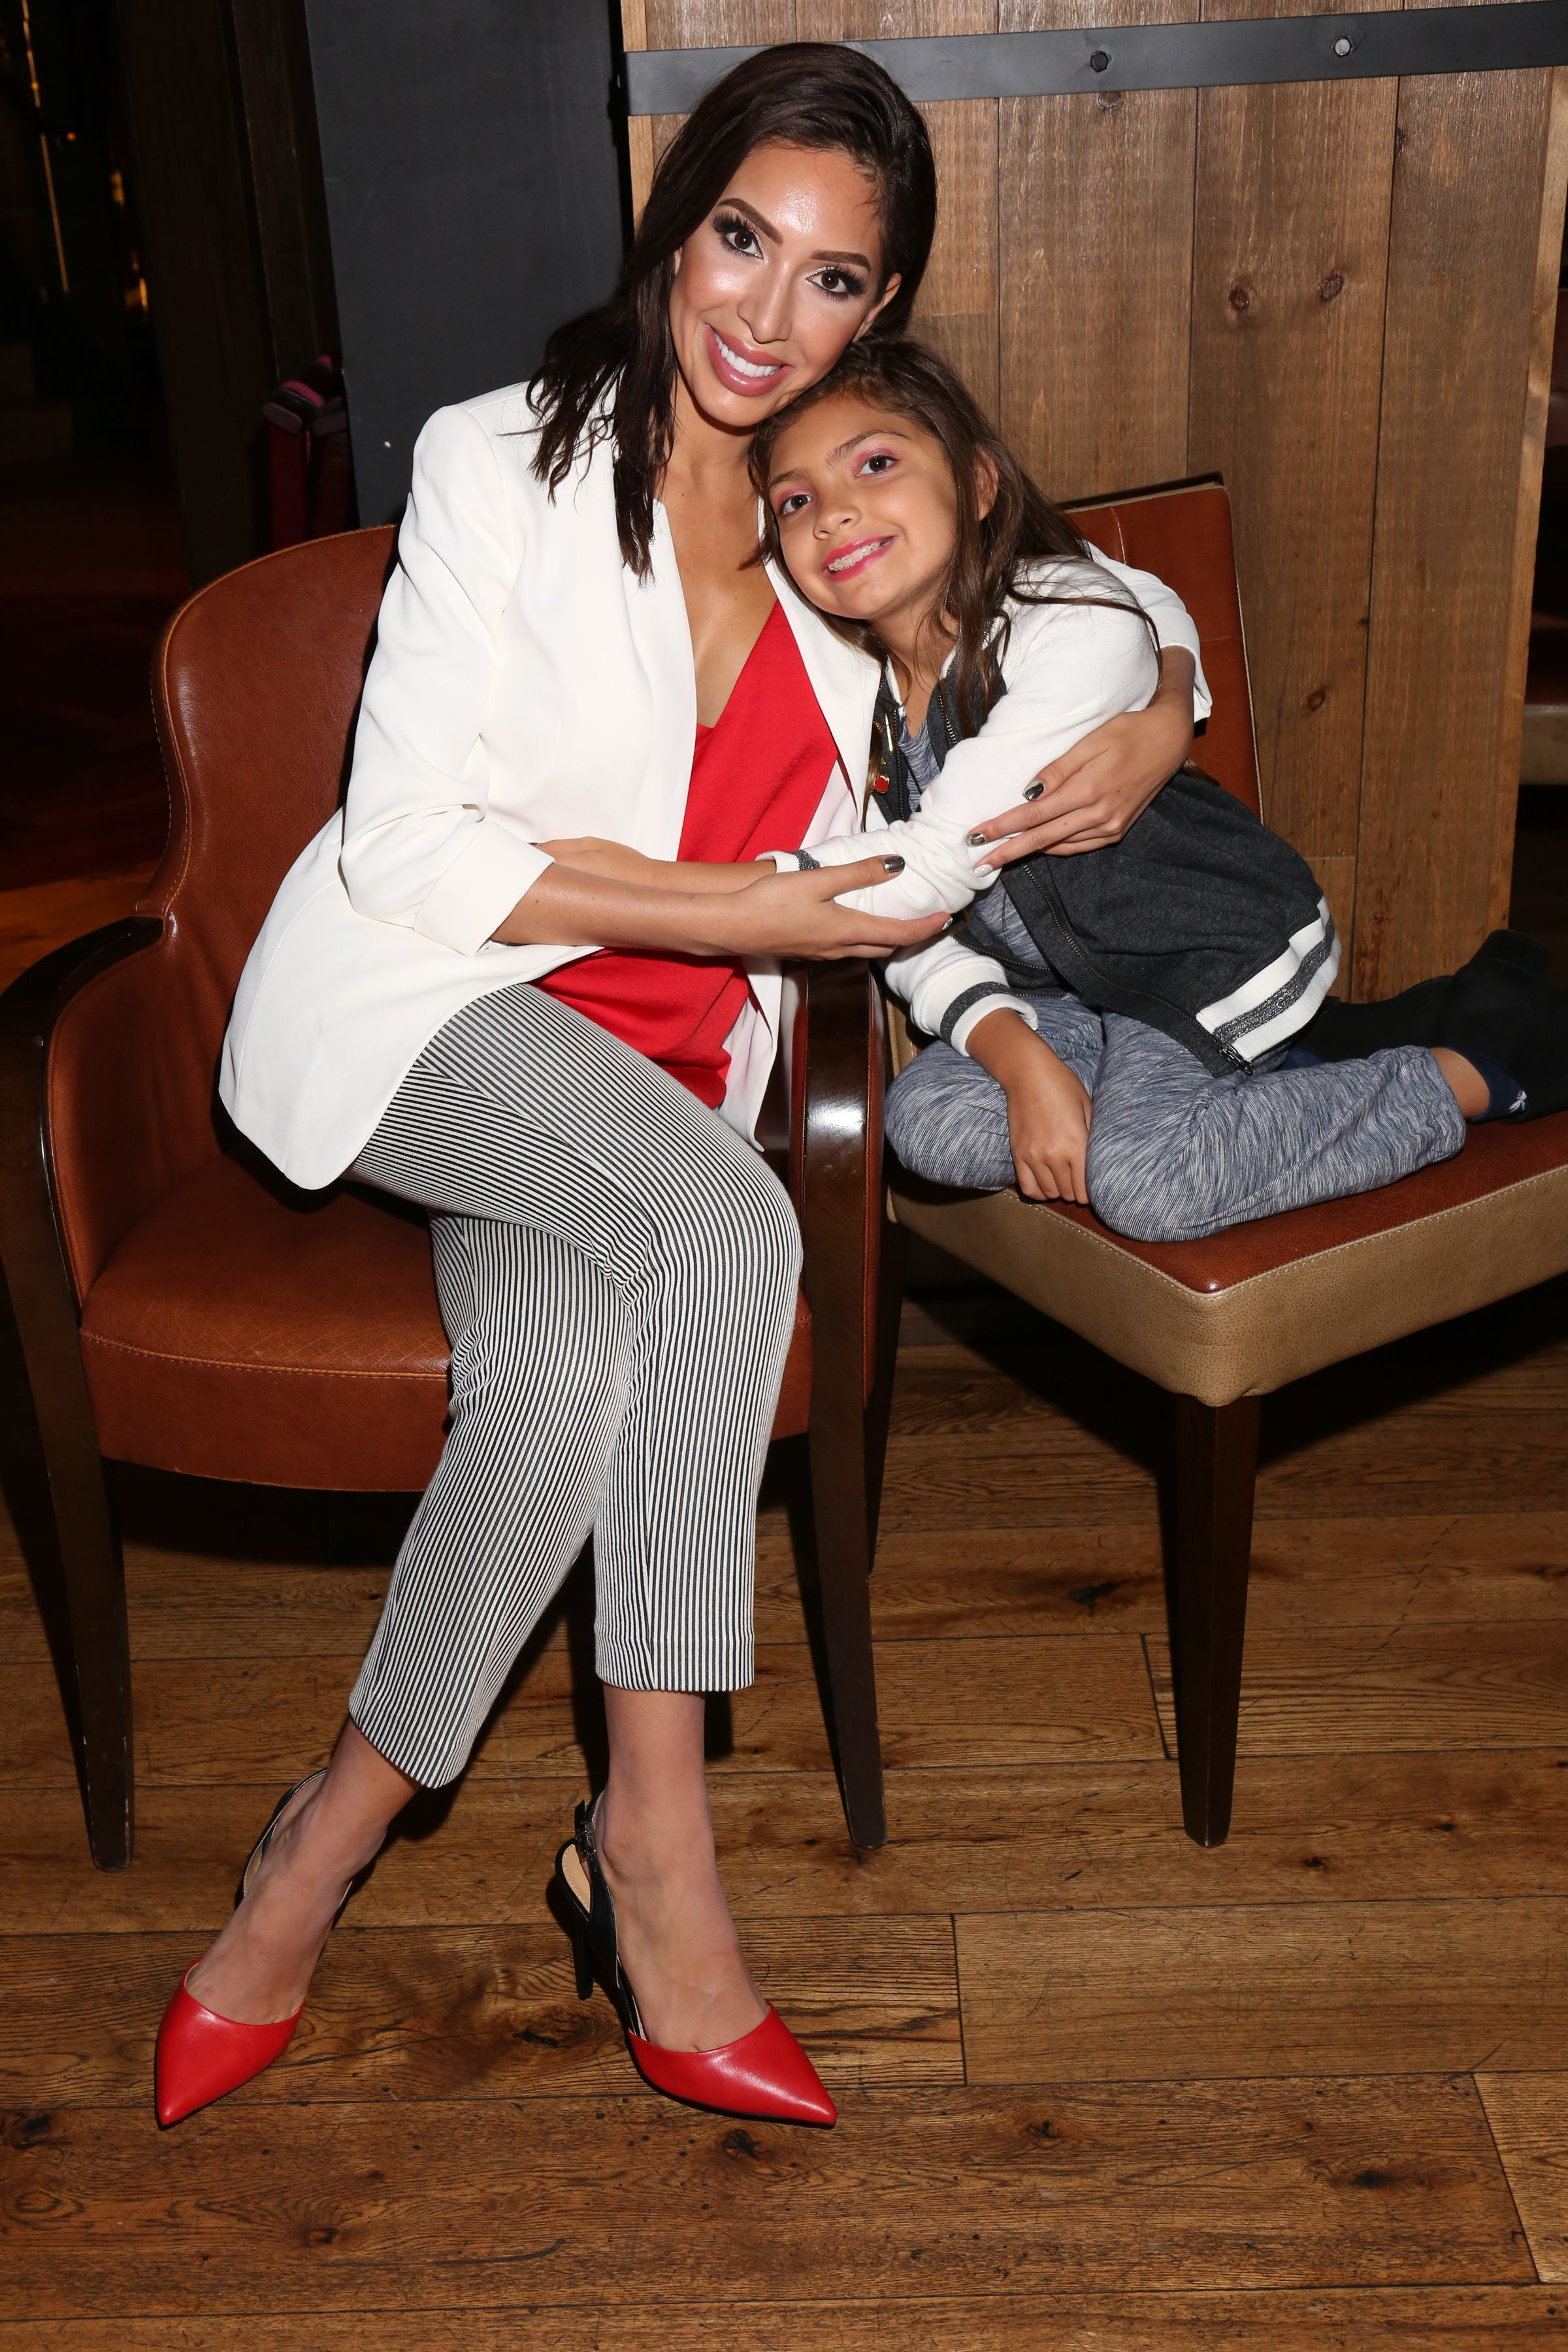 Farrah Abraham cuddled up to her daughter Sophia while attending the Celebrity Boxing Press Preview in New York City on Aug. 21, 2018.